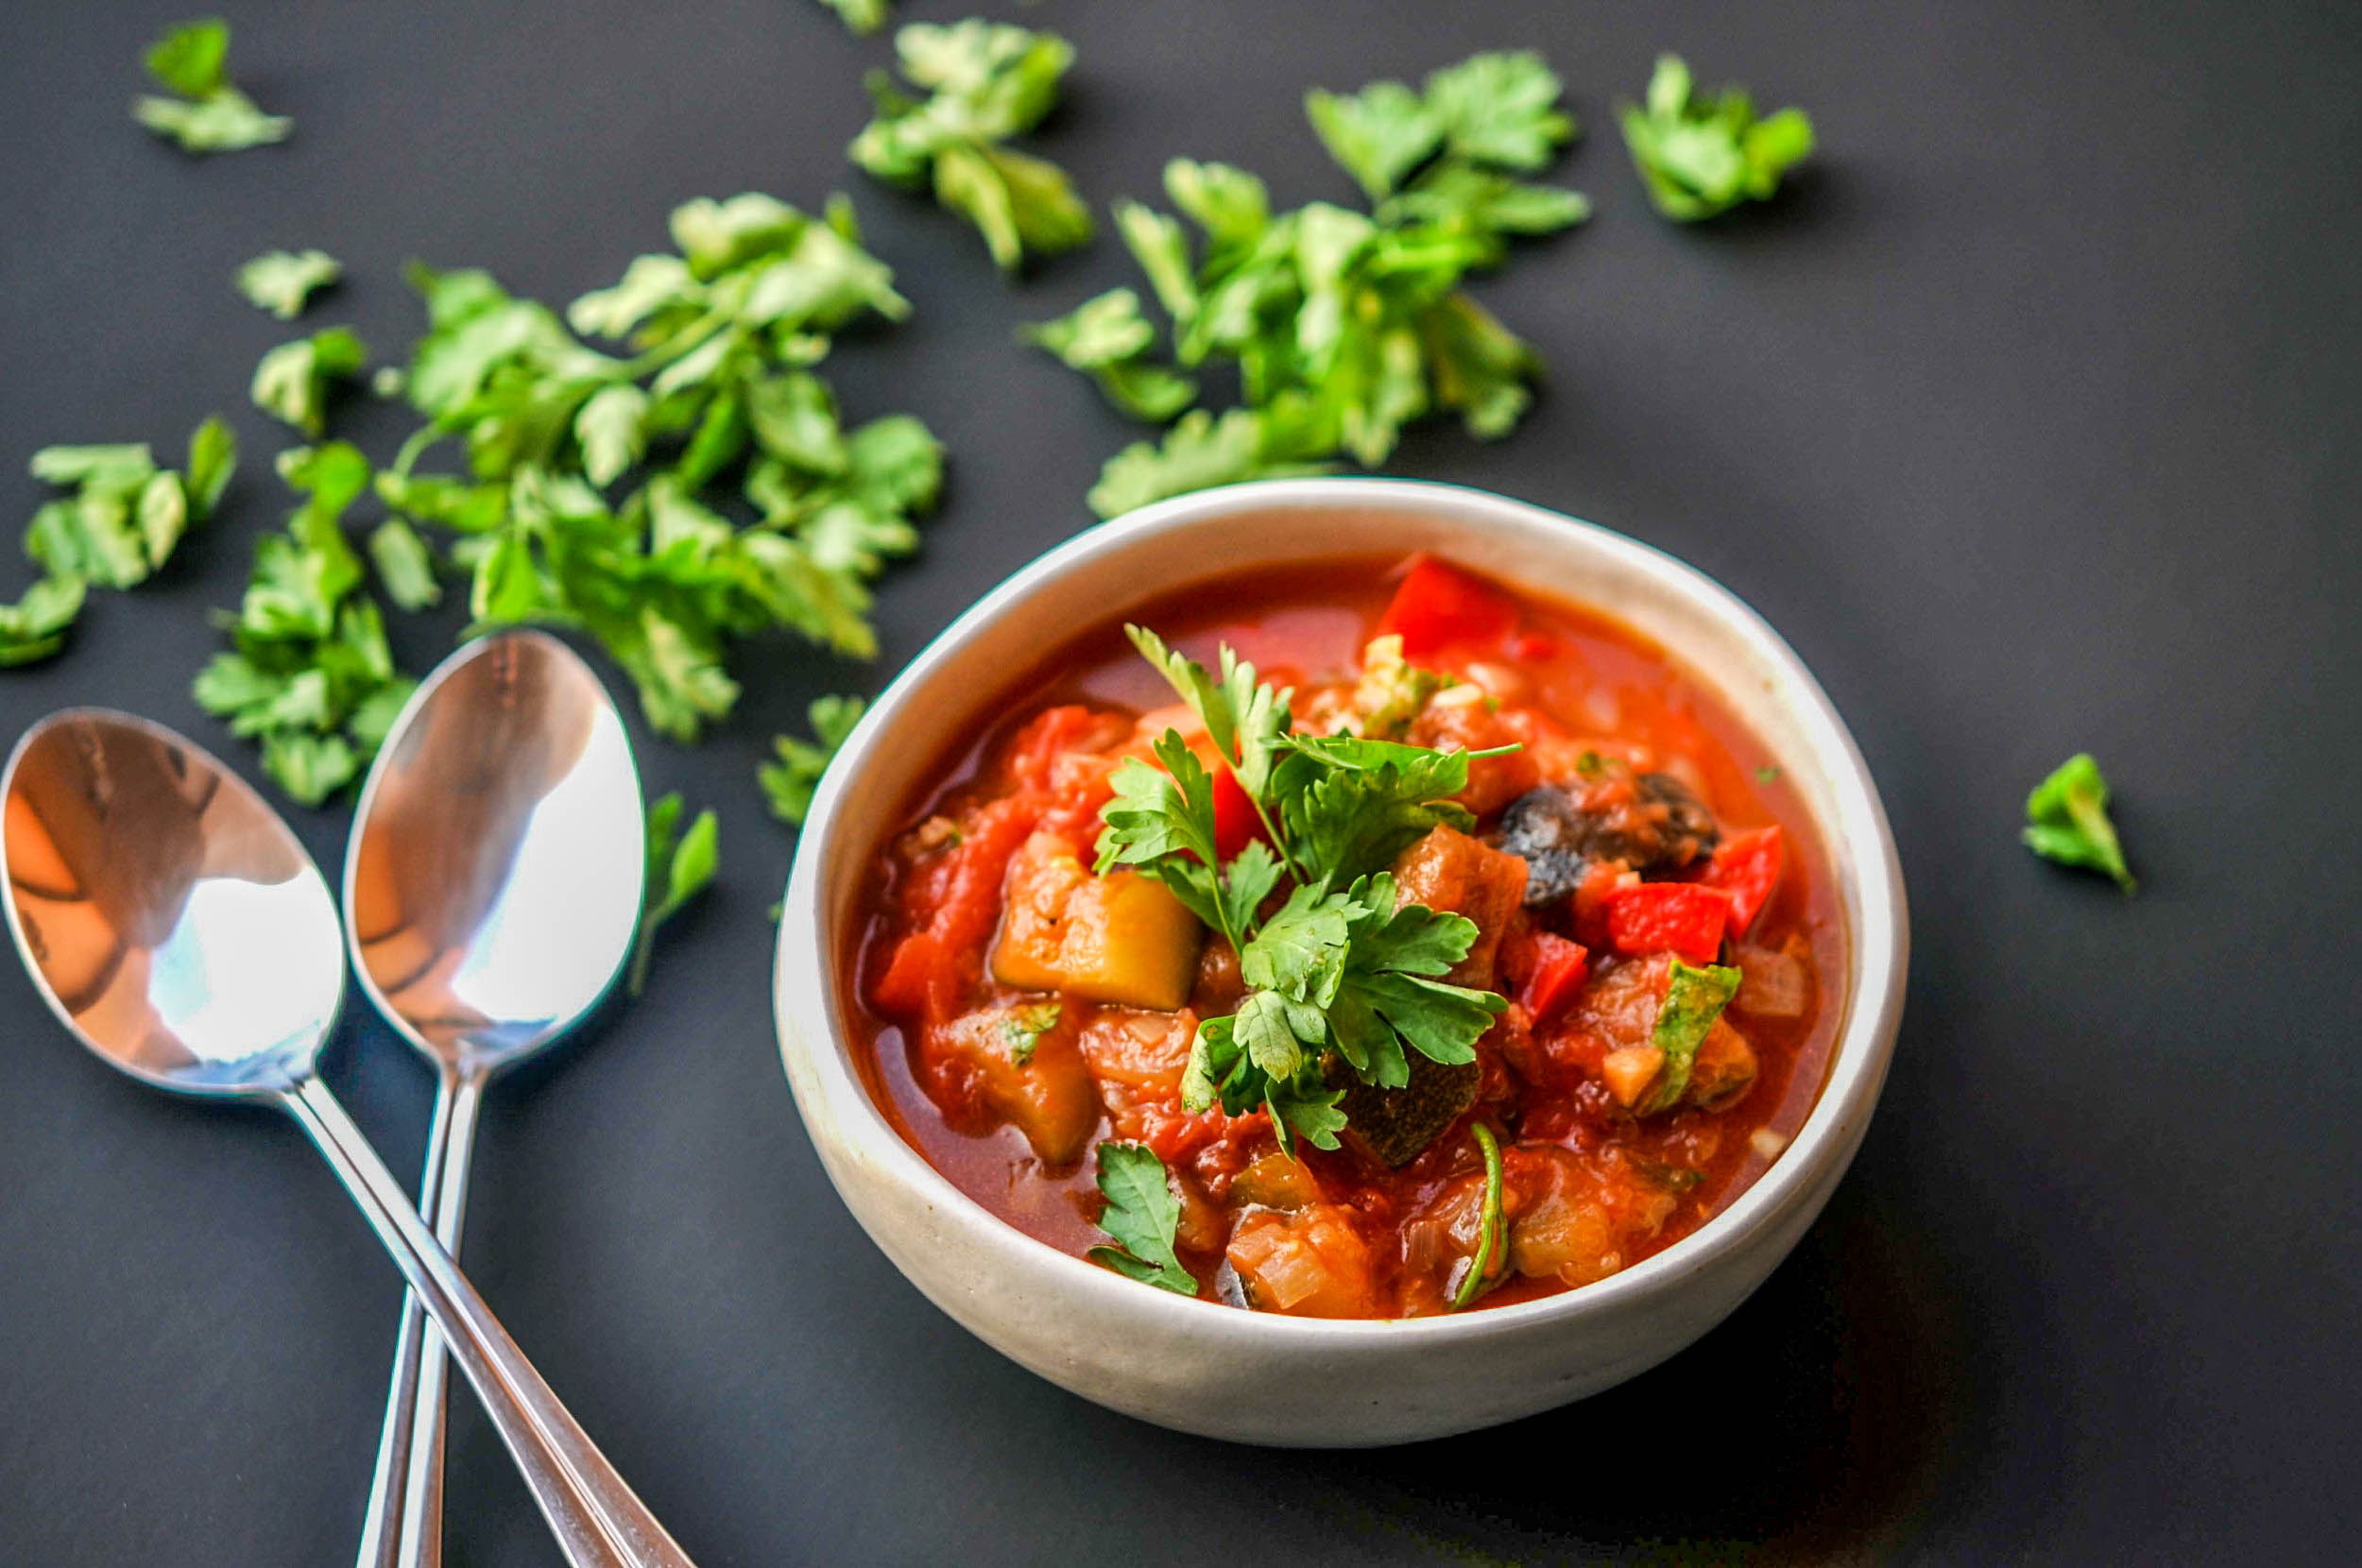 Slow Cooker Vegan Vegetable Stew with Eggplant, Bell Pepper, Zucchini, & Onion. A healthy, hearty, and incredibly easy recipe to make.